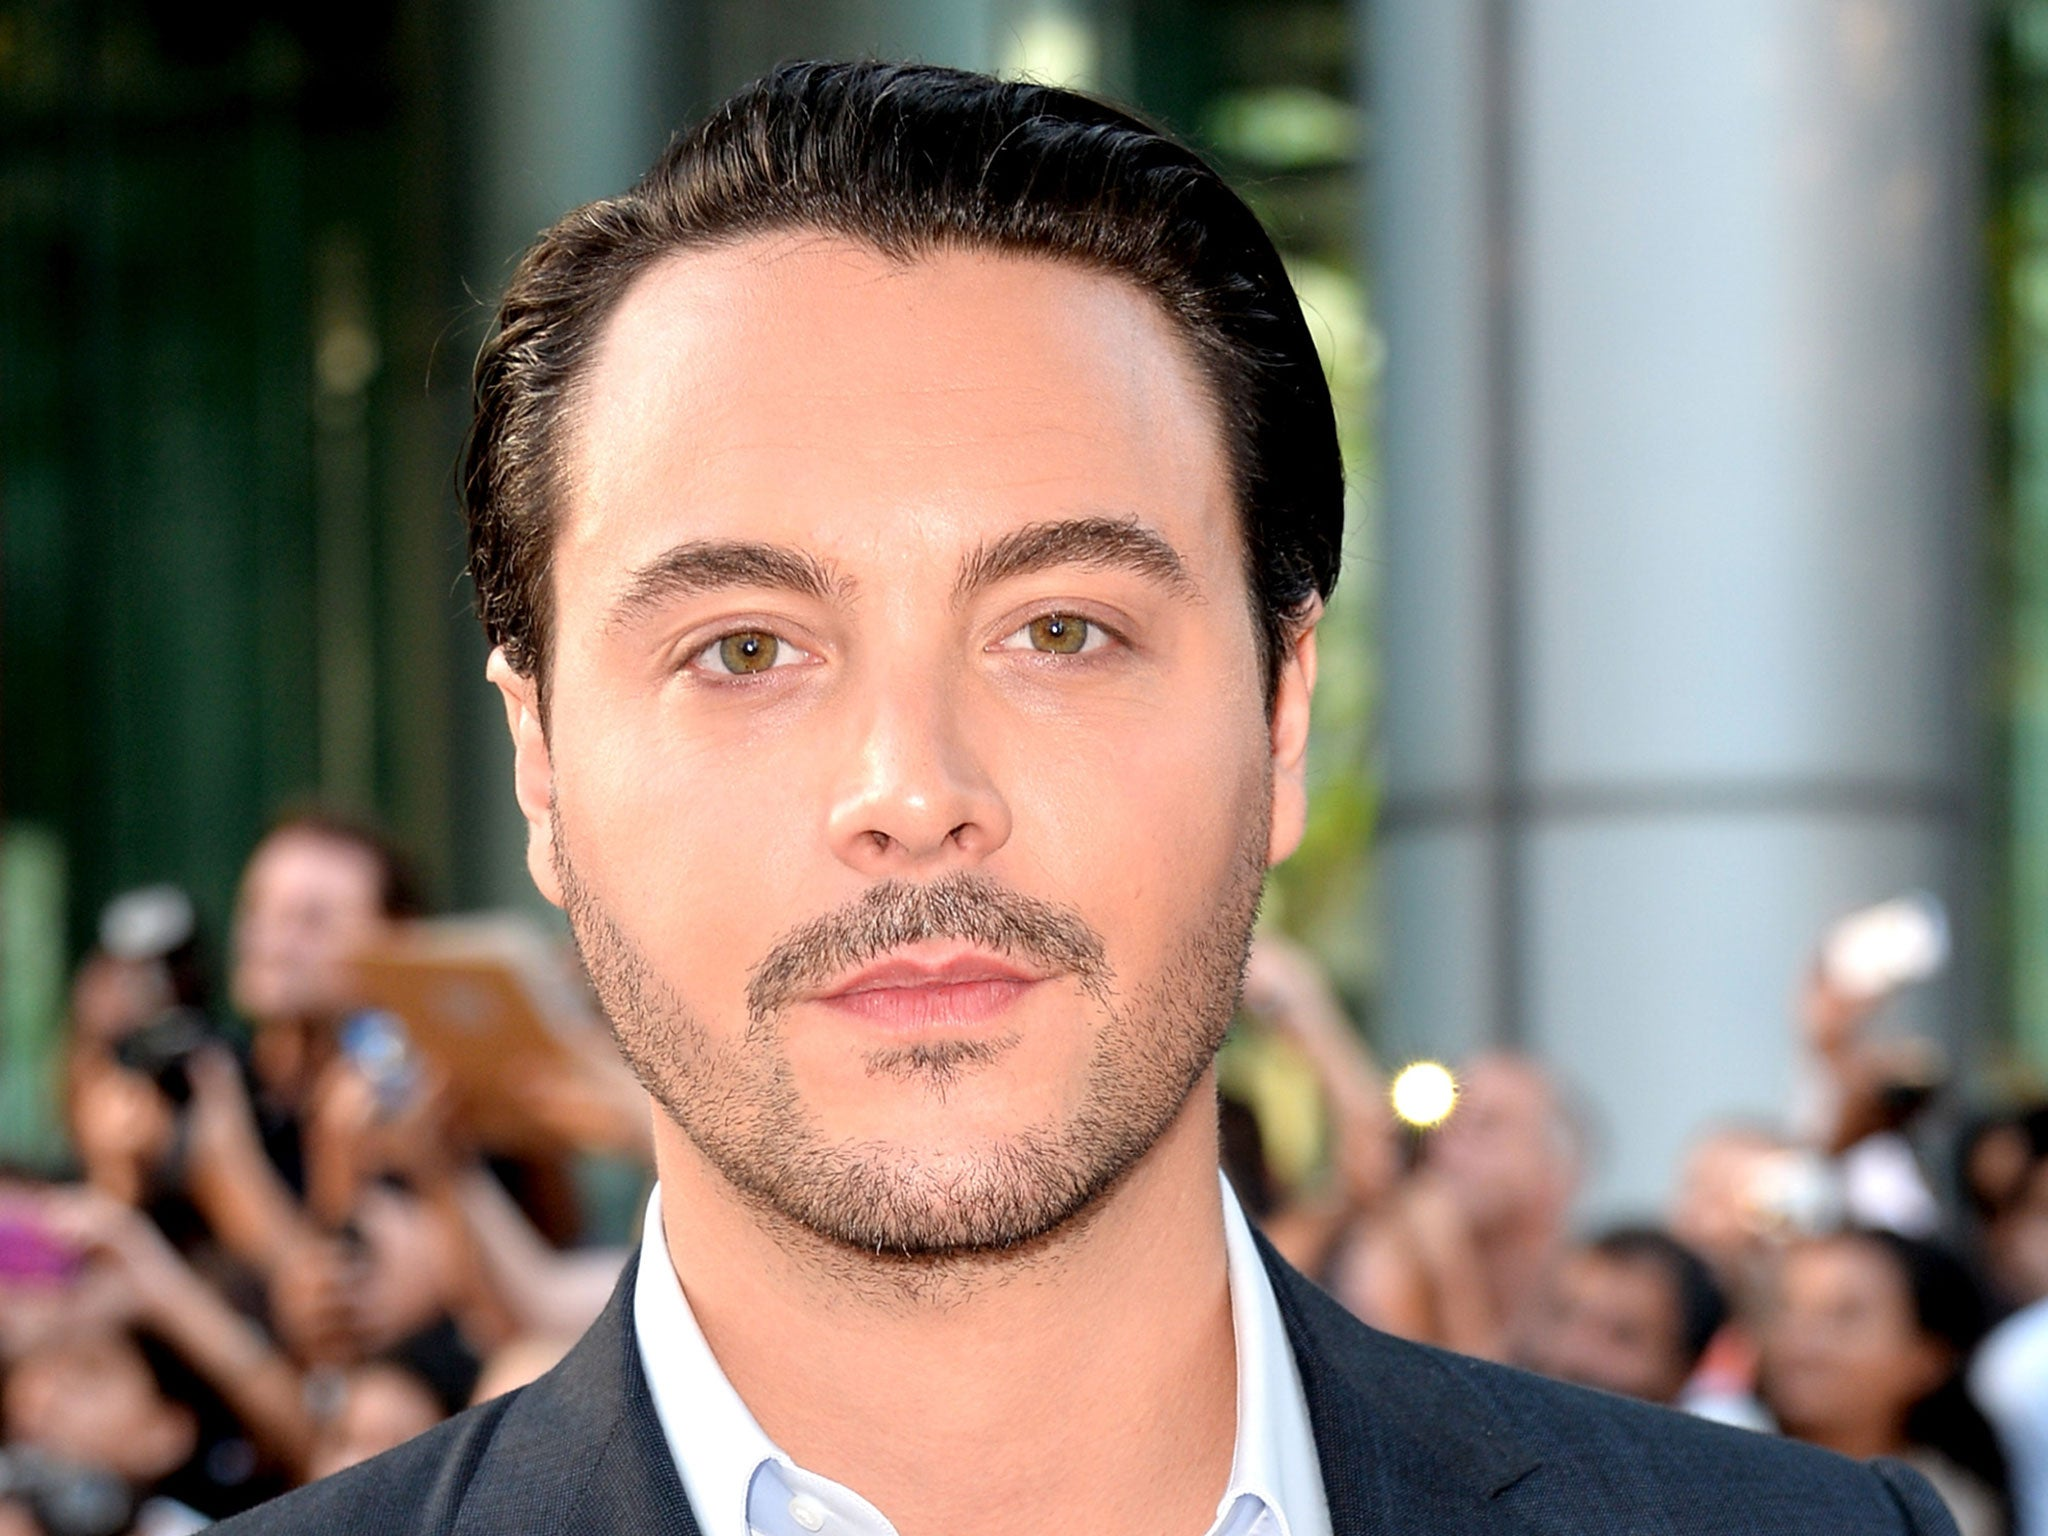 Jack Huston earned a  million dollar salary, leaving the net worth at 5 million in 2017